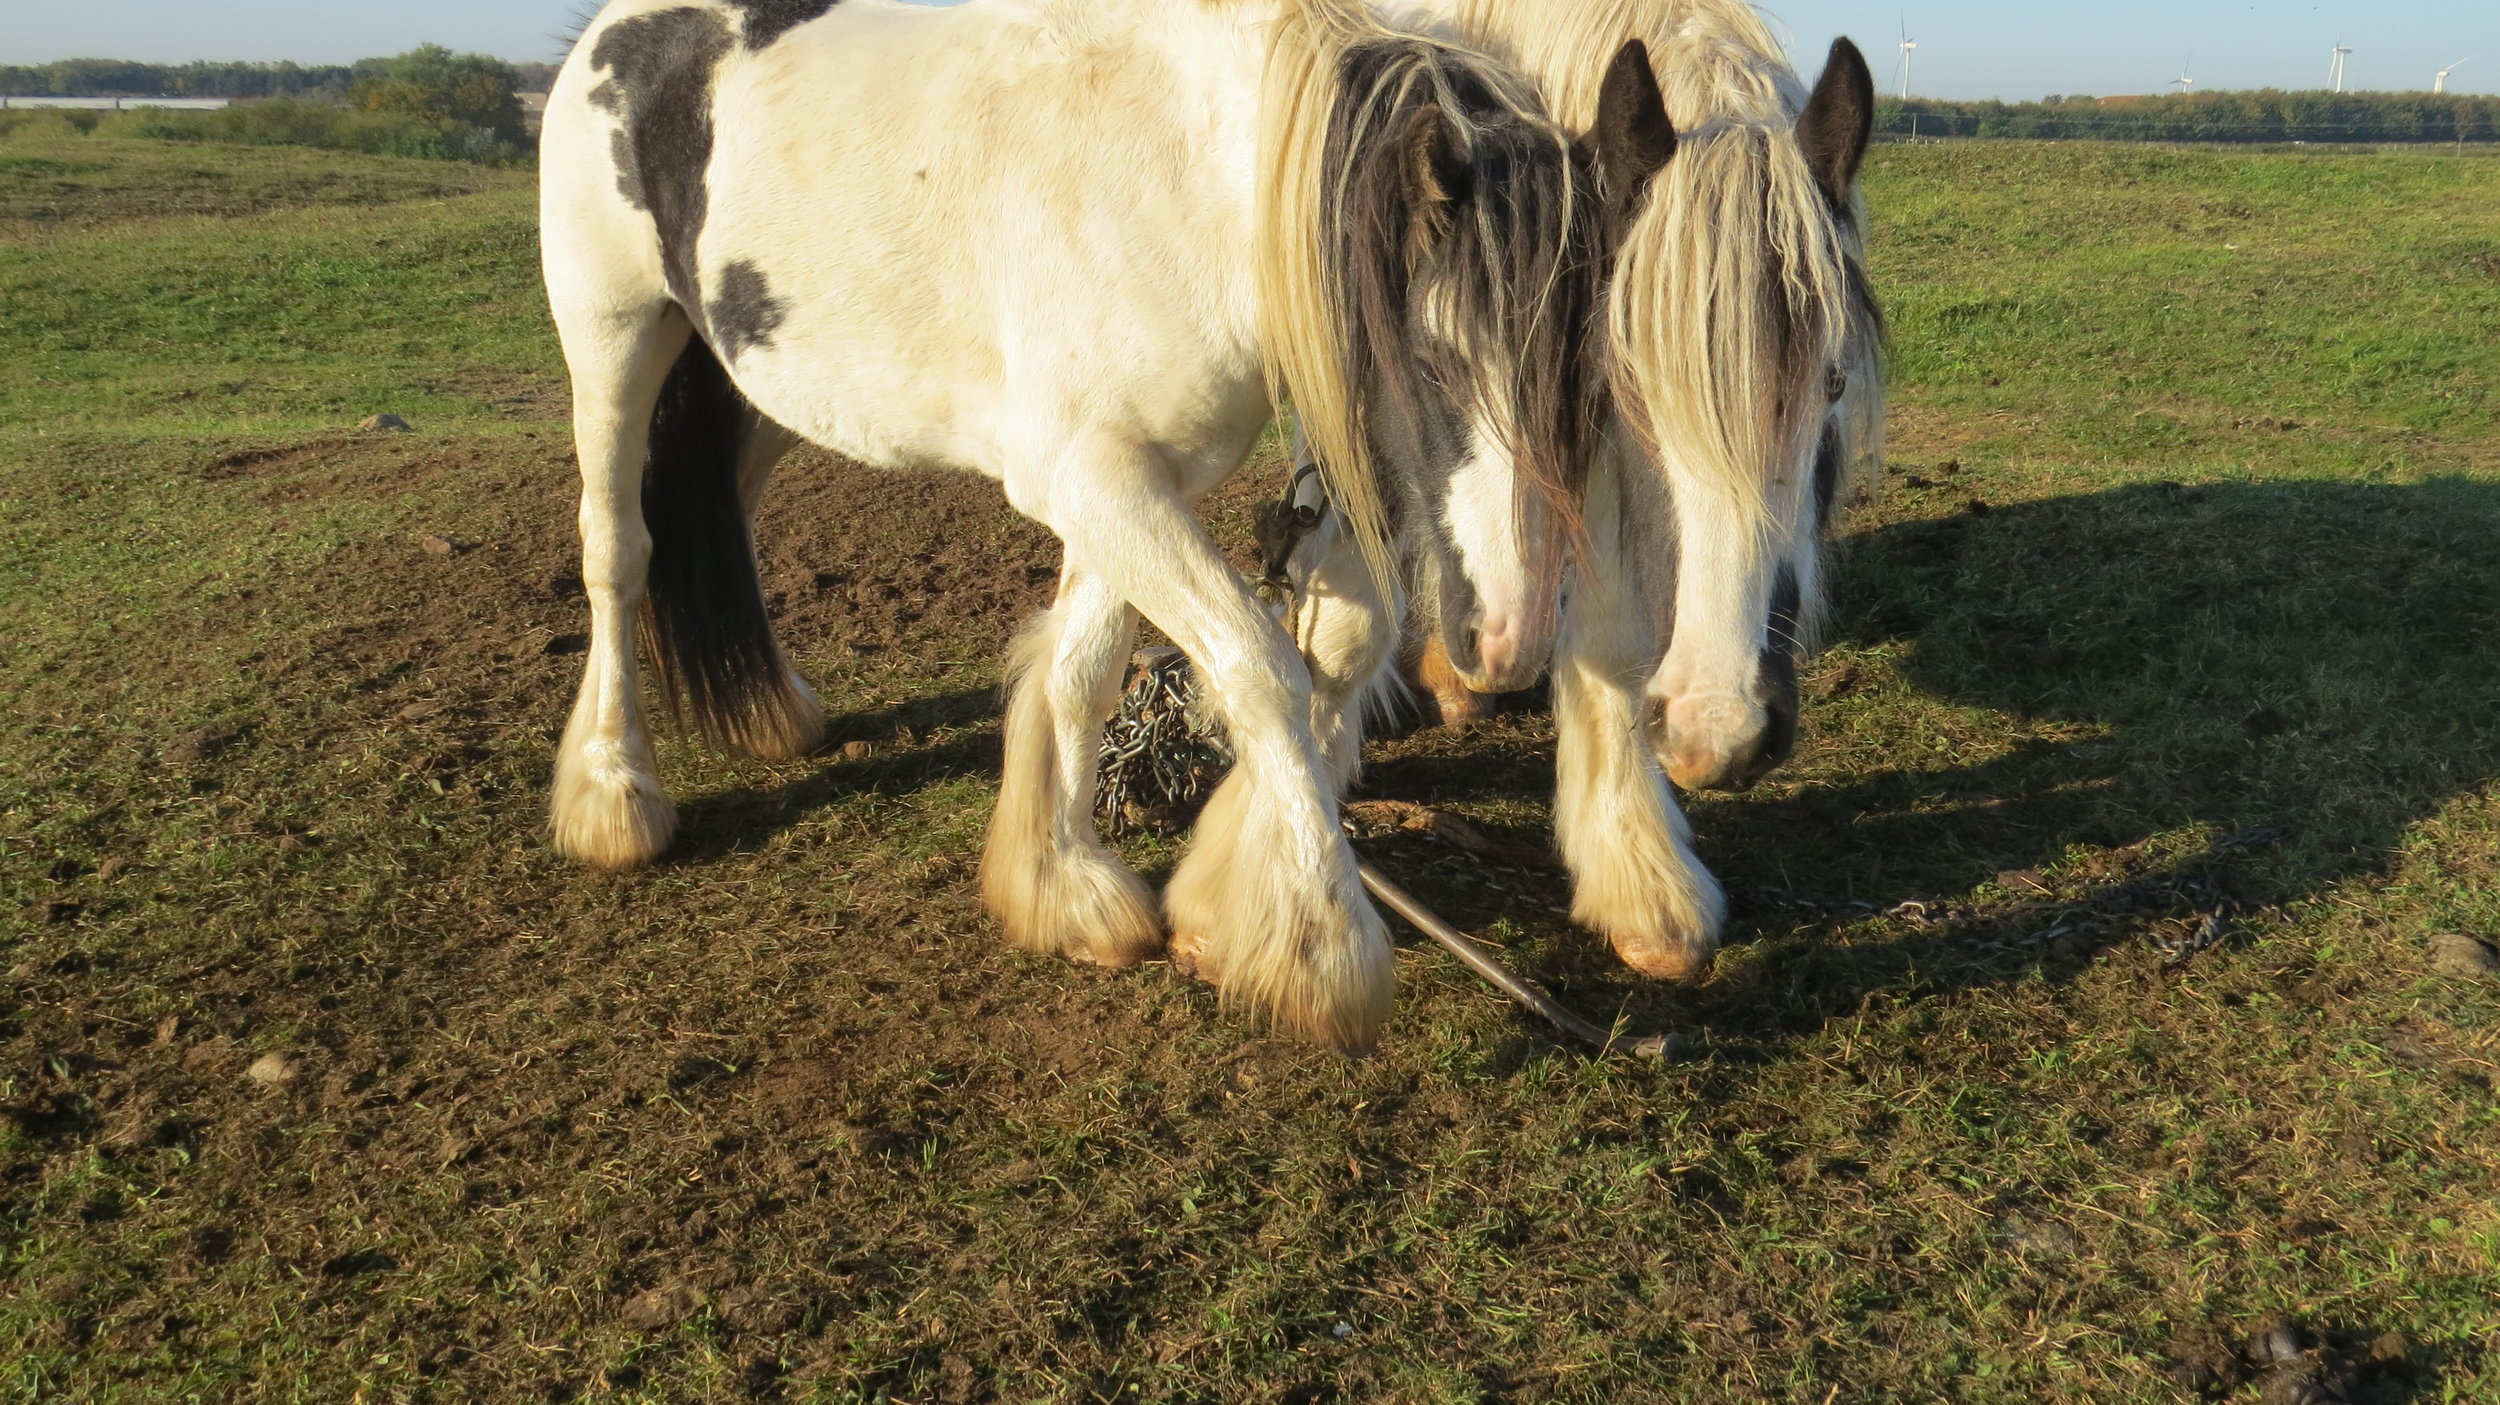 Chained Horses Tangled